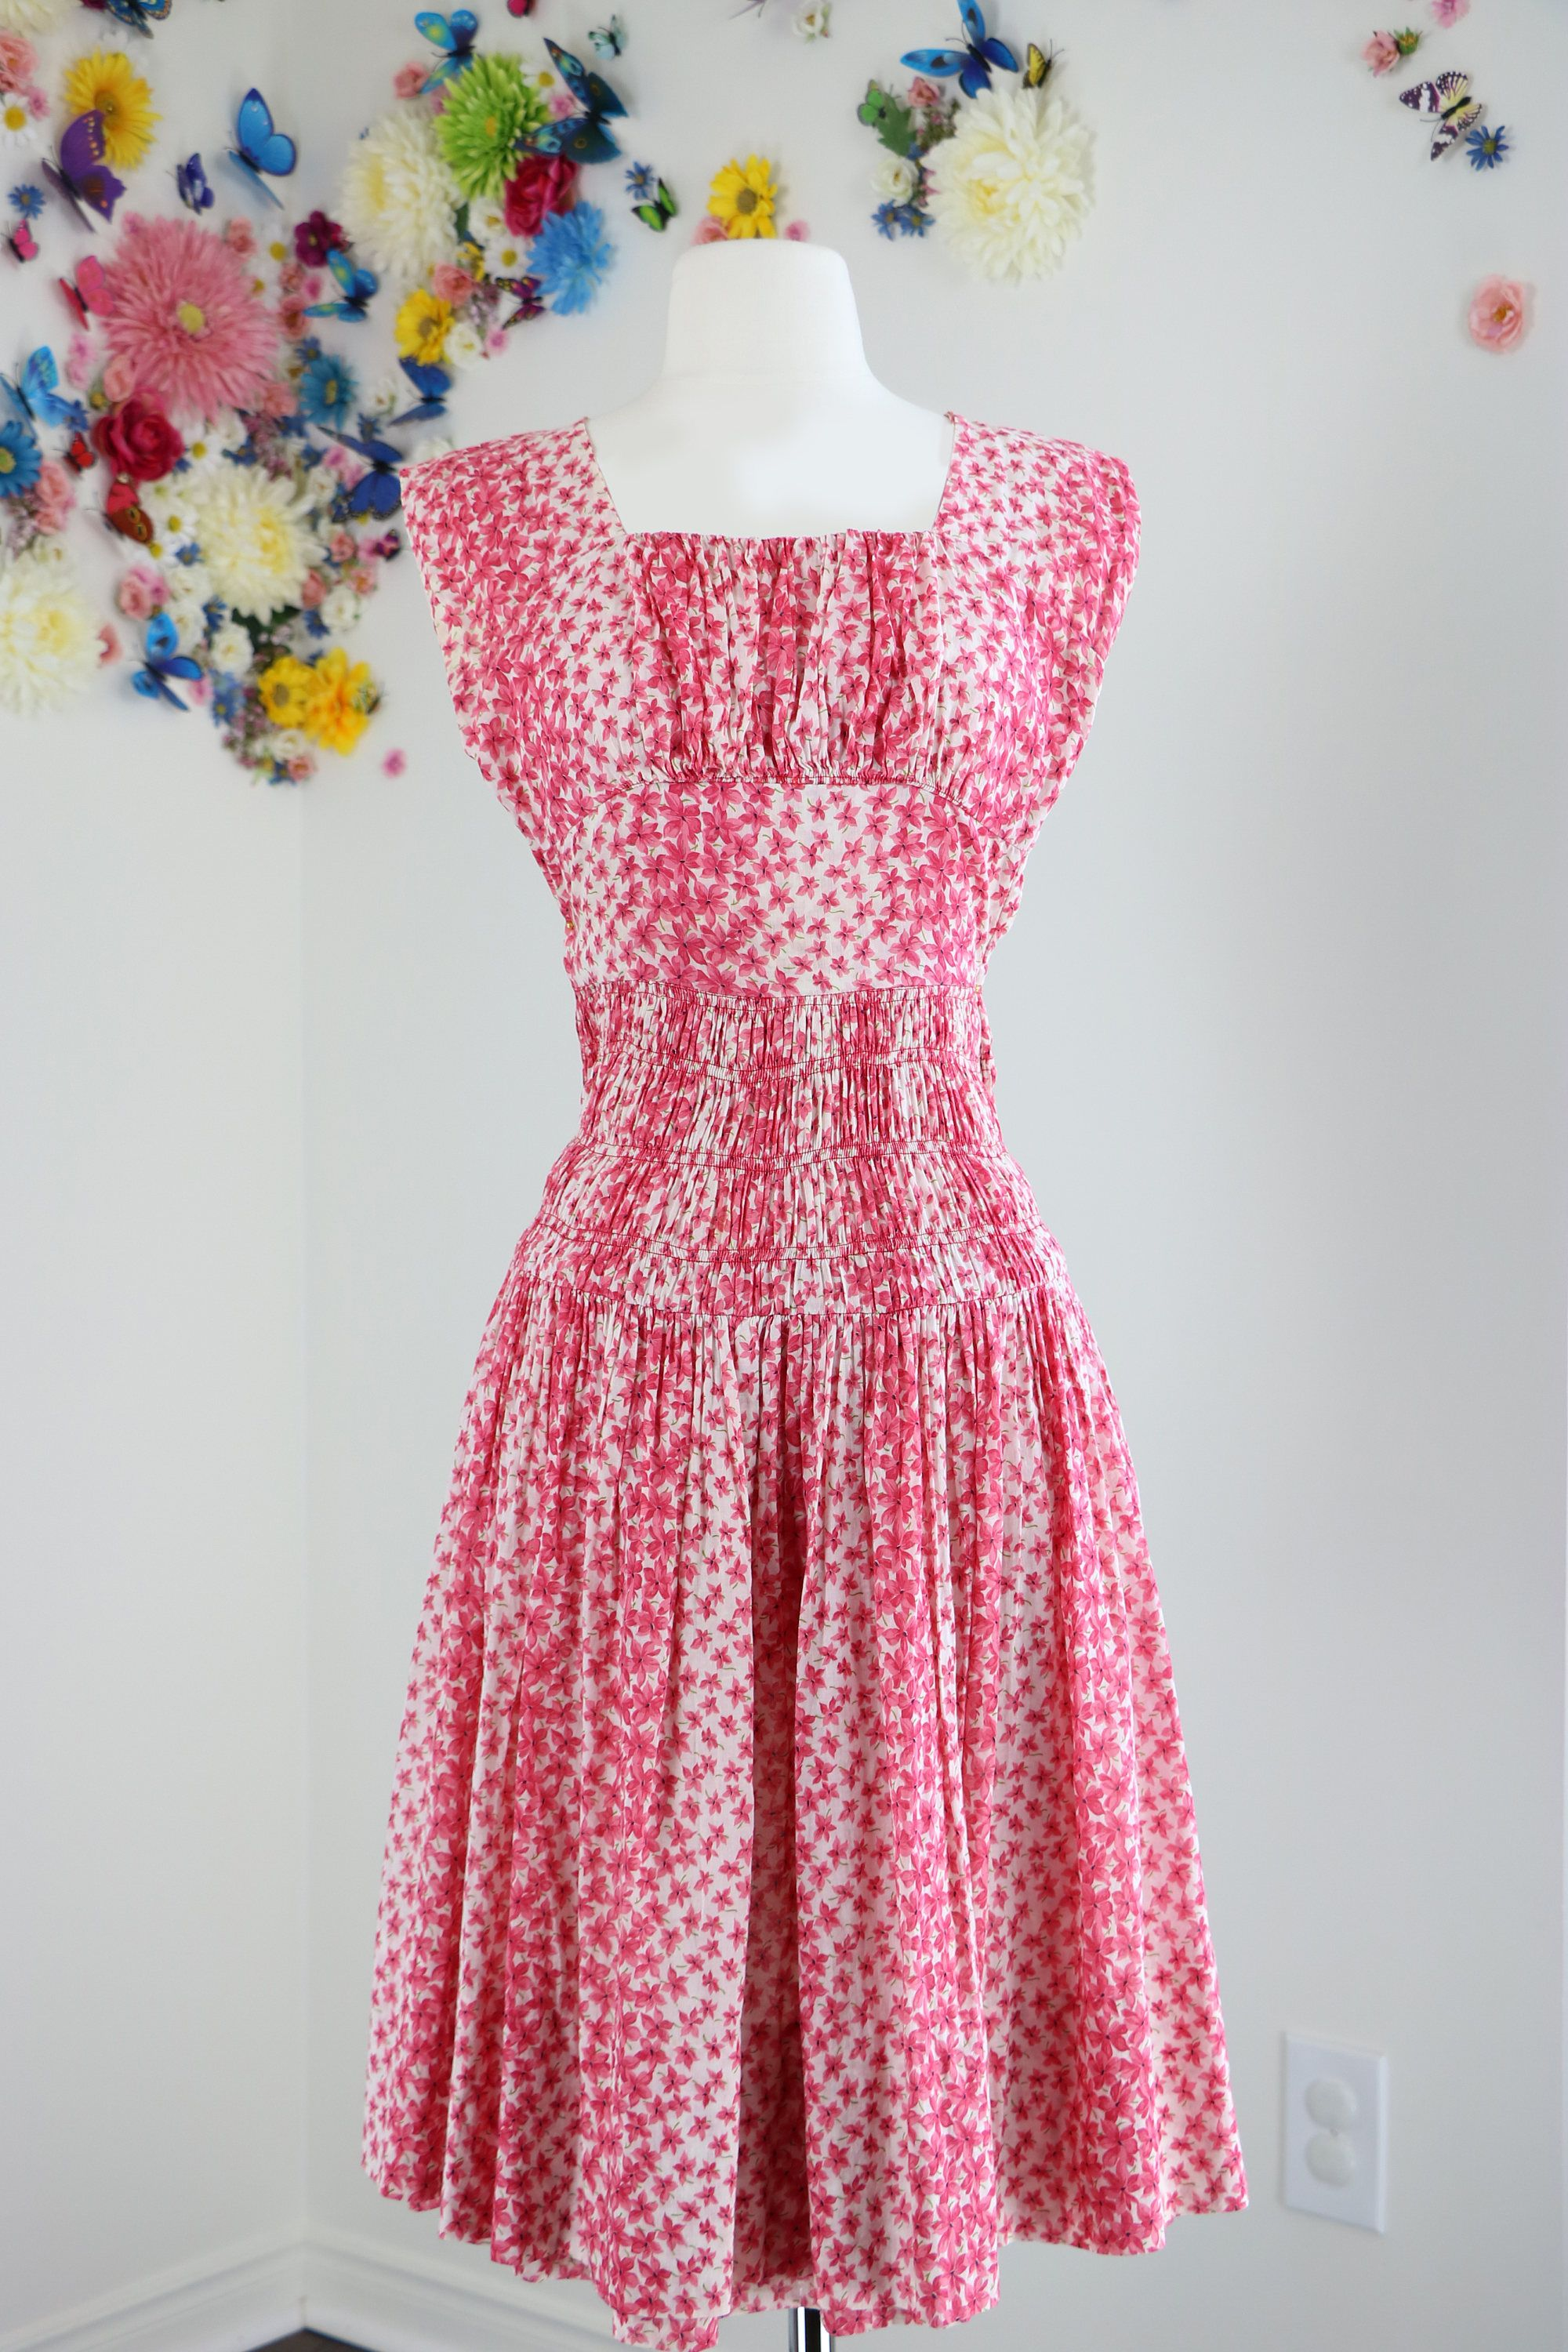 84d2f3f12 Vintage 1950s Red Pink White Floral Light Weight Cotton Fit And Flare Midi  Summer Dress Ruched Waist Sleeveless Size XS Betty Draper Style by ...